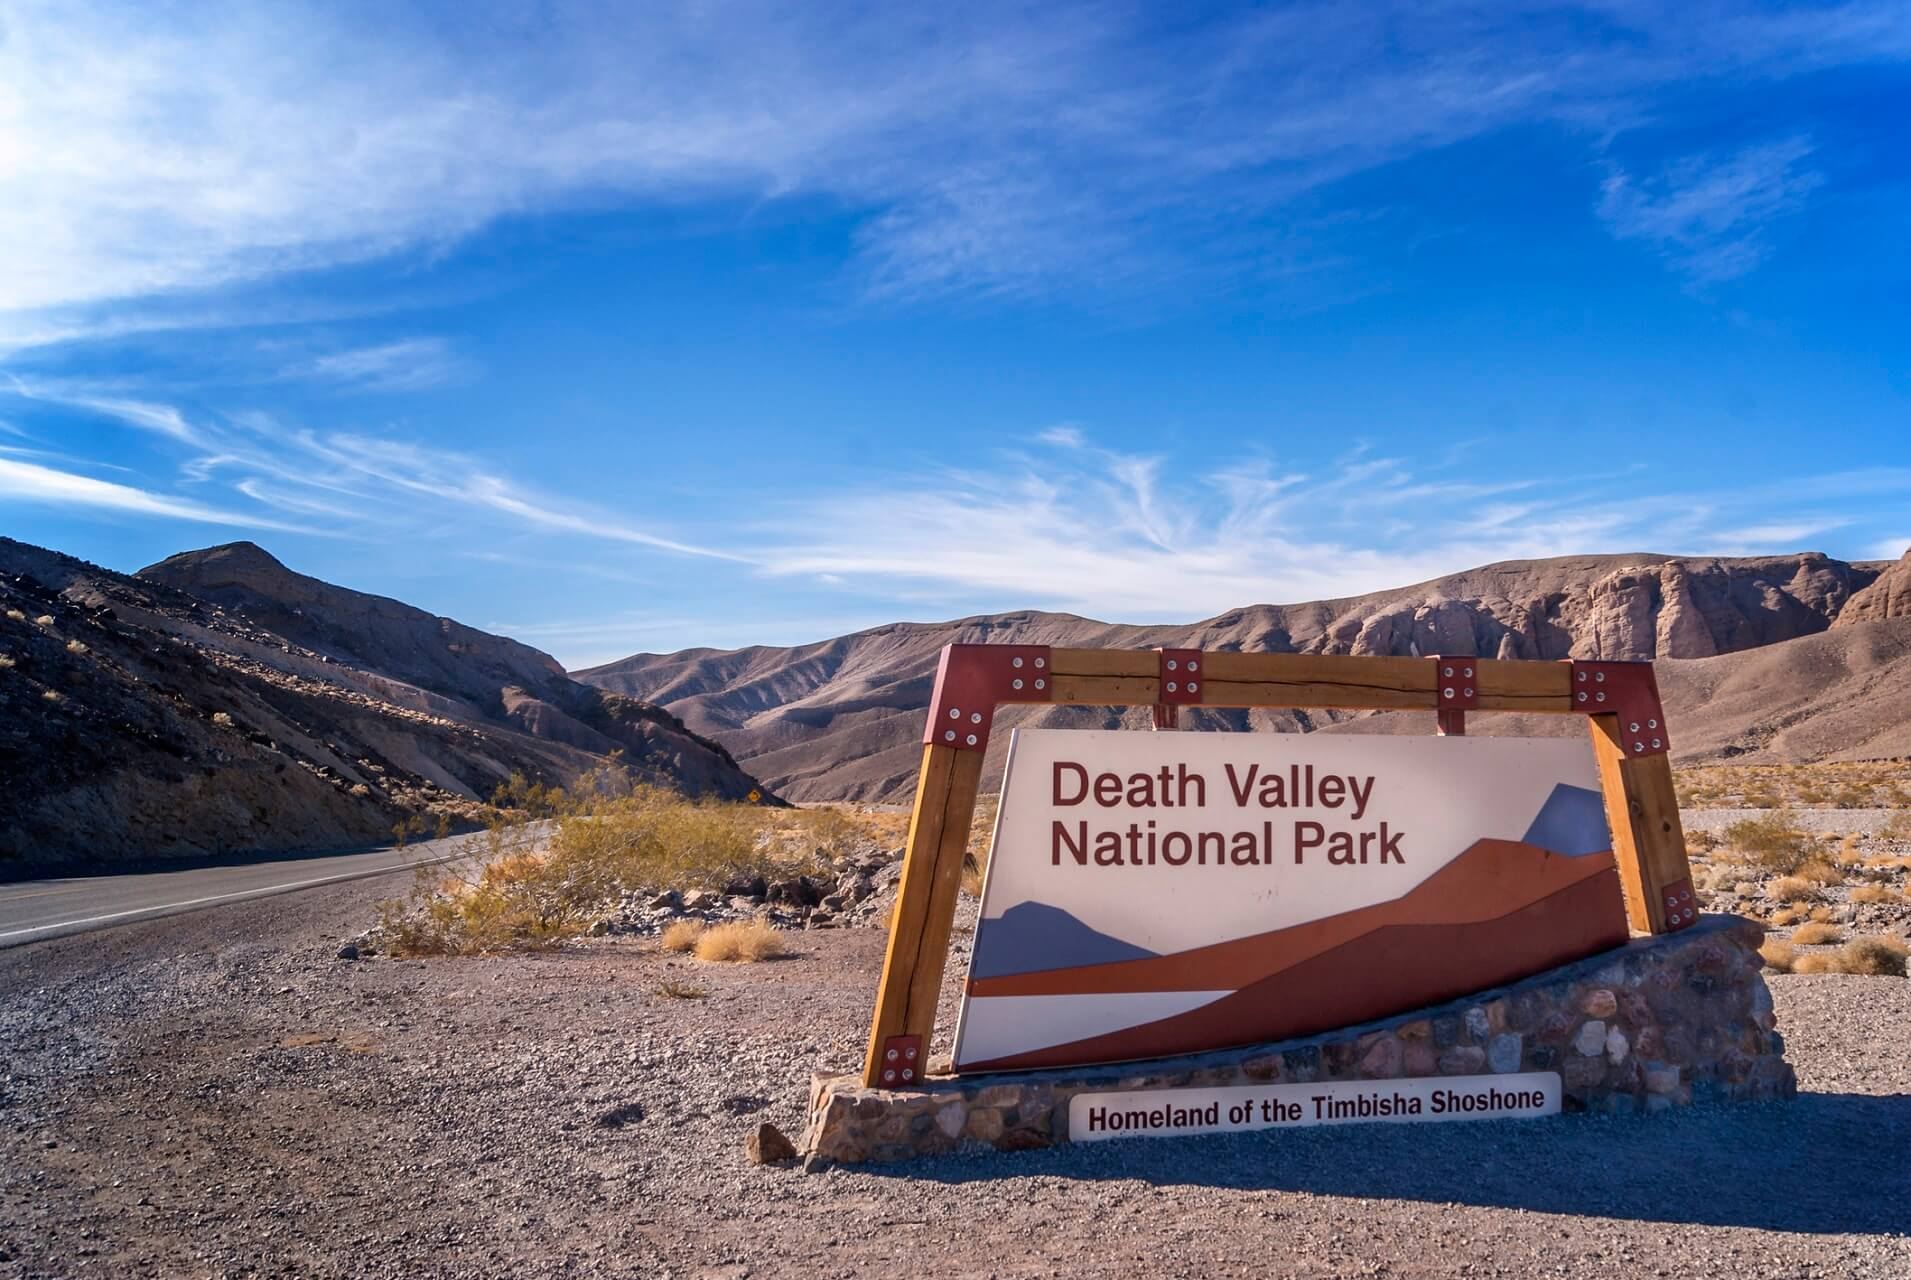 Das Death Valley Nationalpark Schild